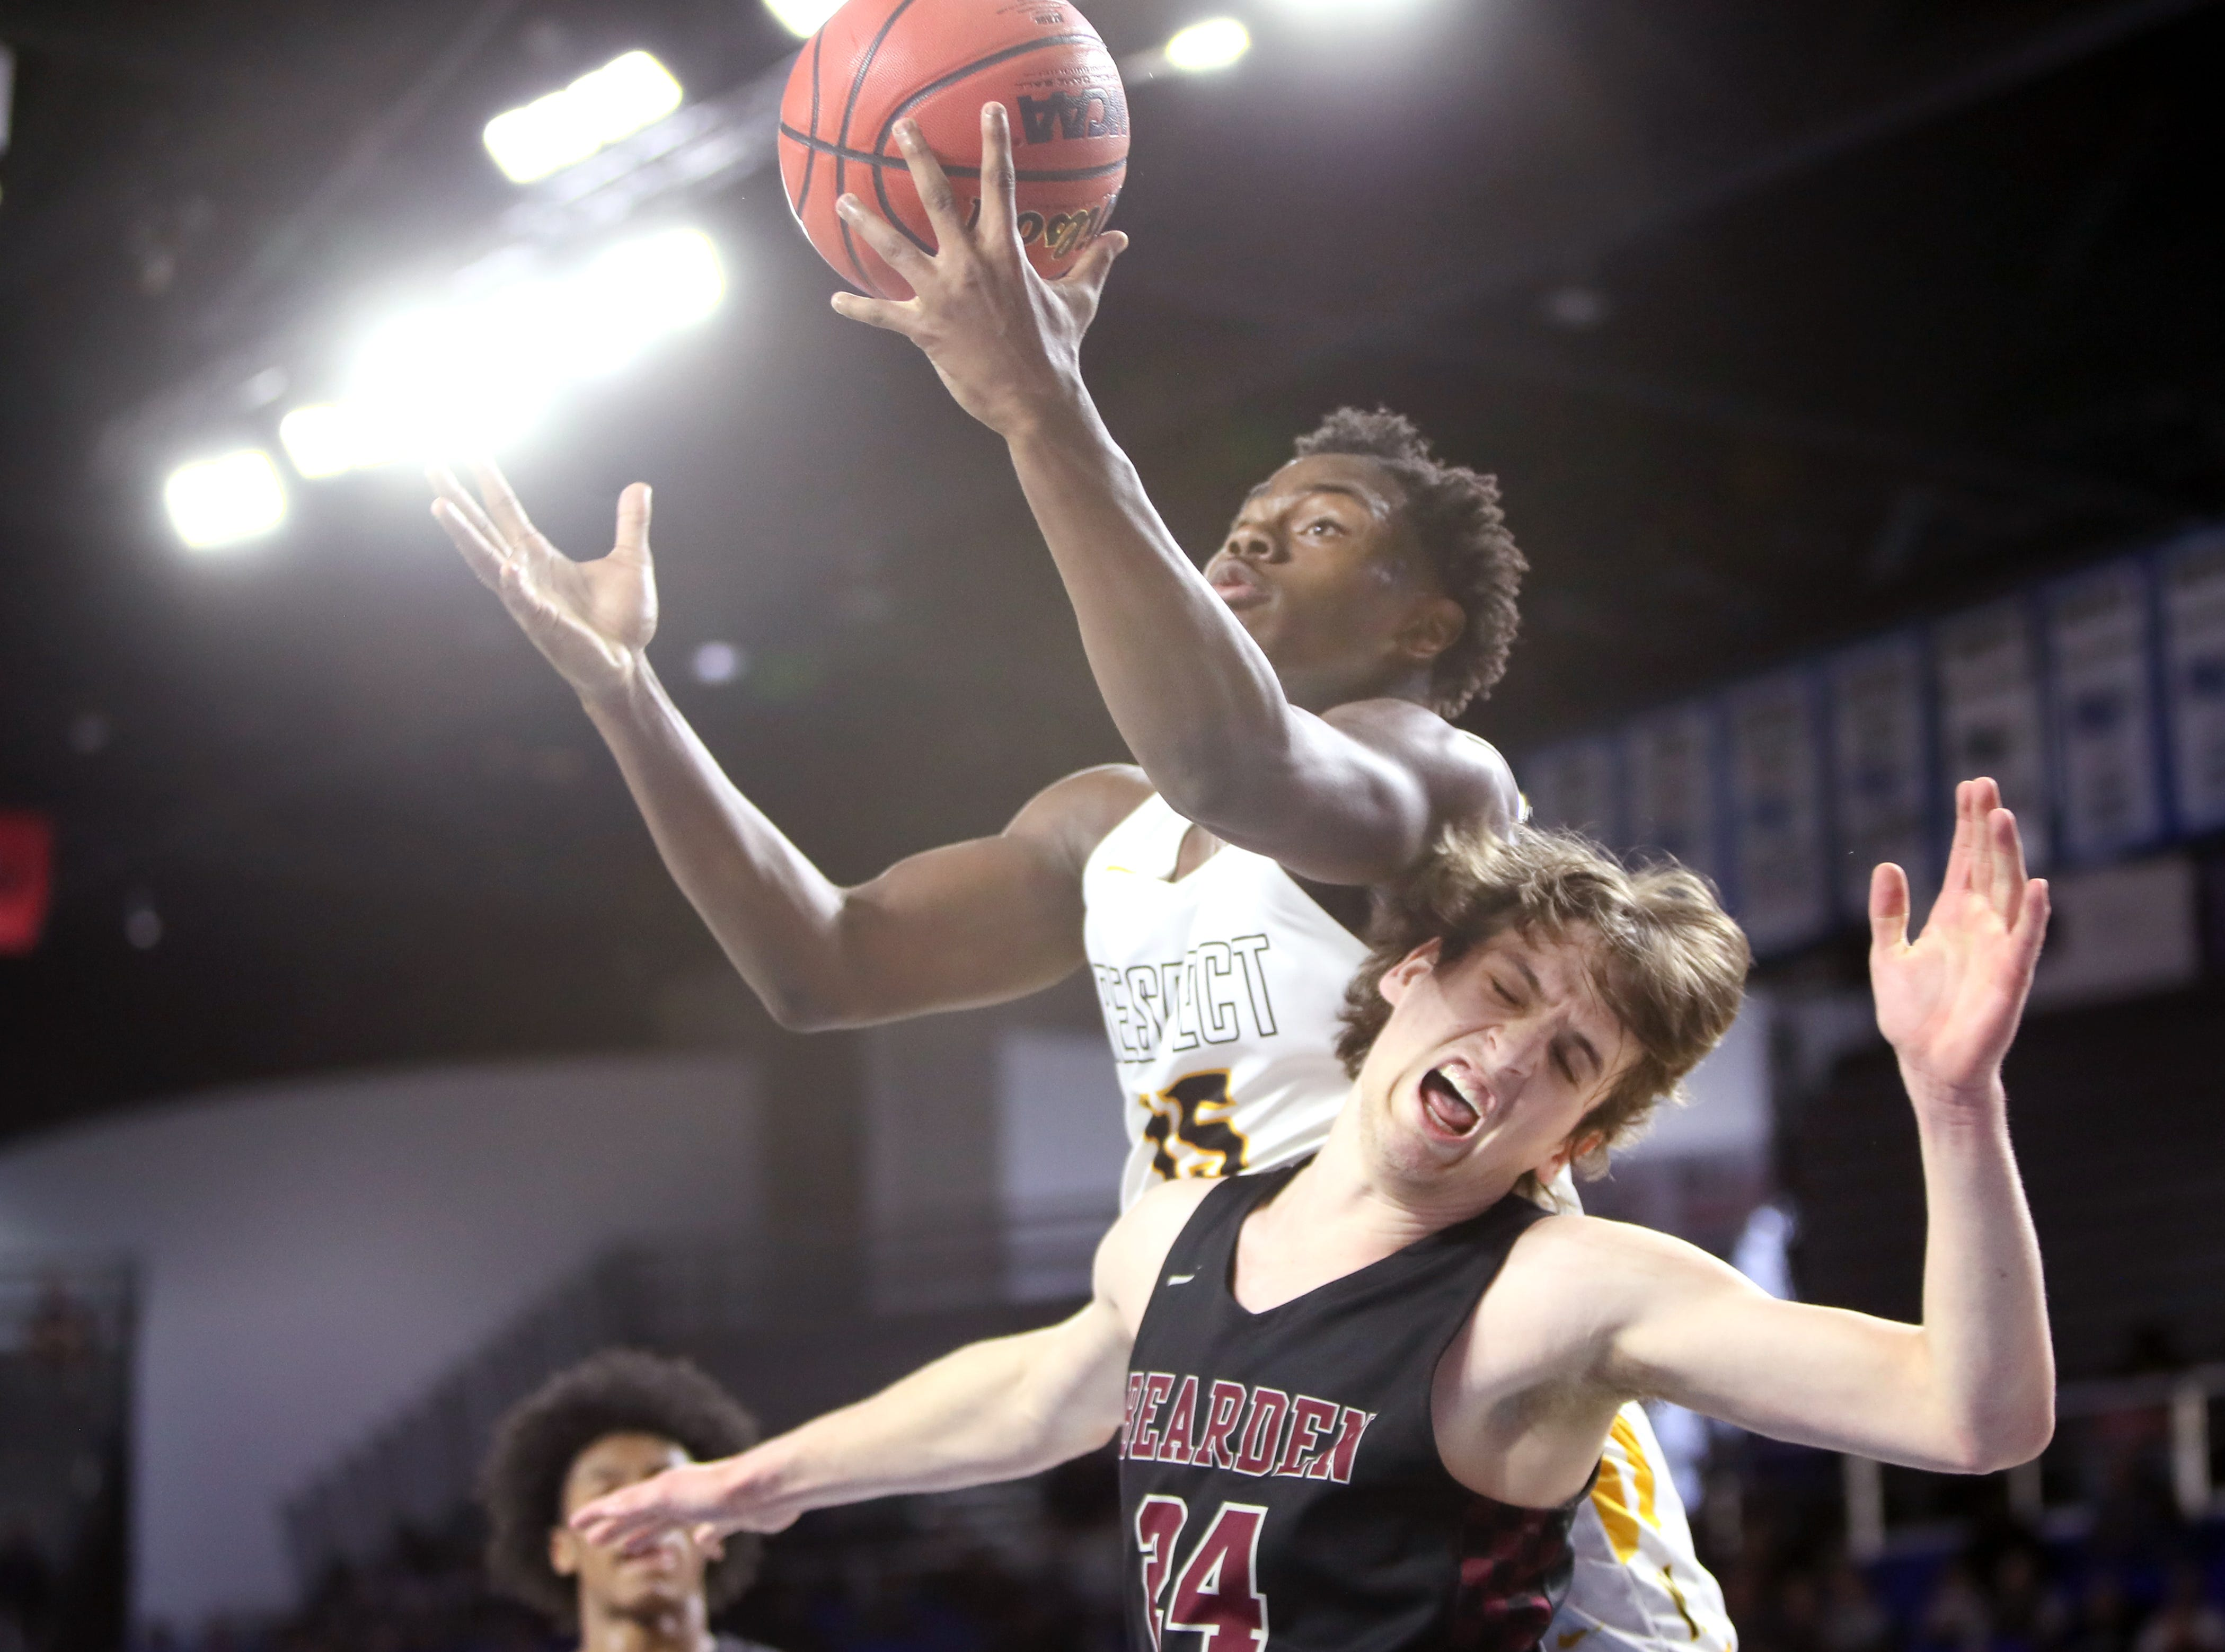 Whitehaven's Keveon Mullins grabs a rebound over Bearden's Kordell Kah during the Class AAA boys basketball state semifinal at the Murphy Center in Murfreesboro, Tenn. on Friday, March 15, 2019.